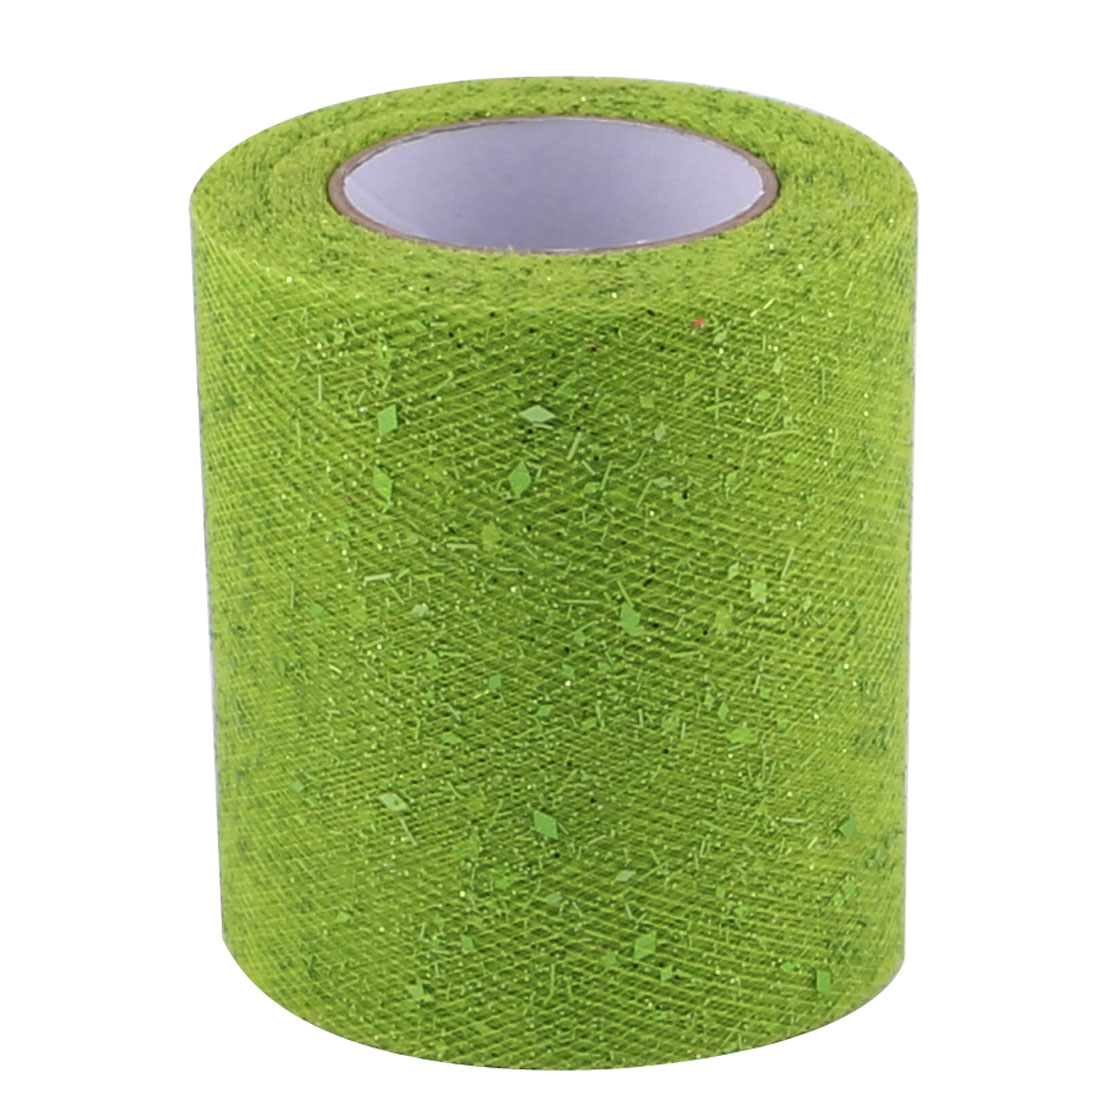 Wedding Banquet Party DIY Tutu Gift Chair Glitter Tulle Spool Fruit Green 25 Yards